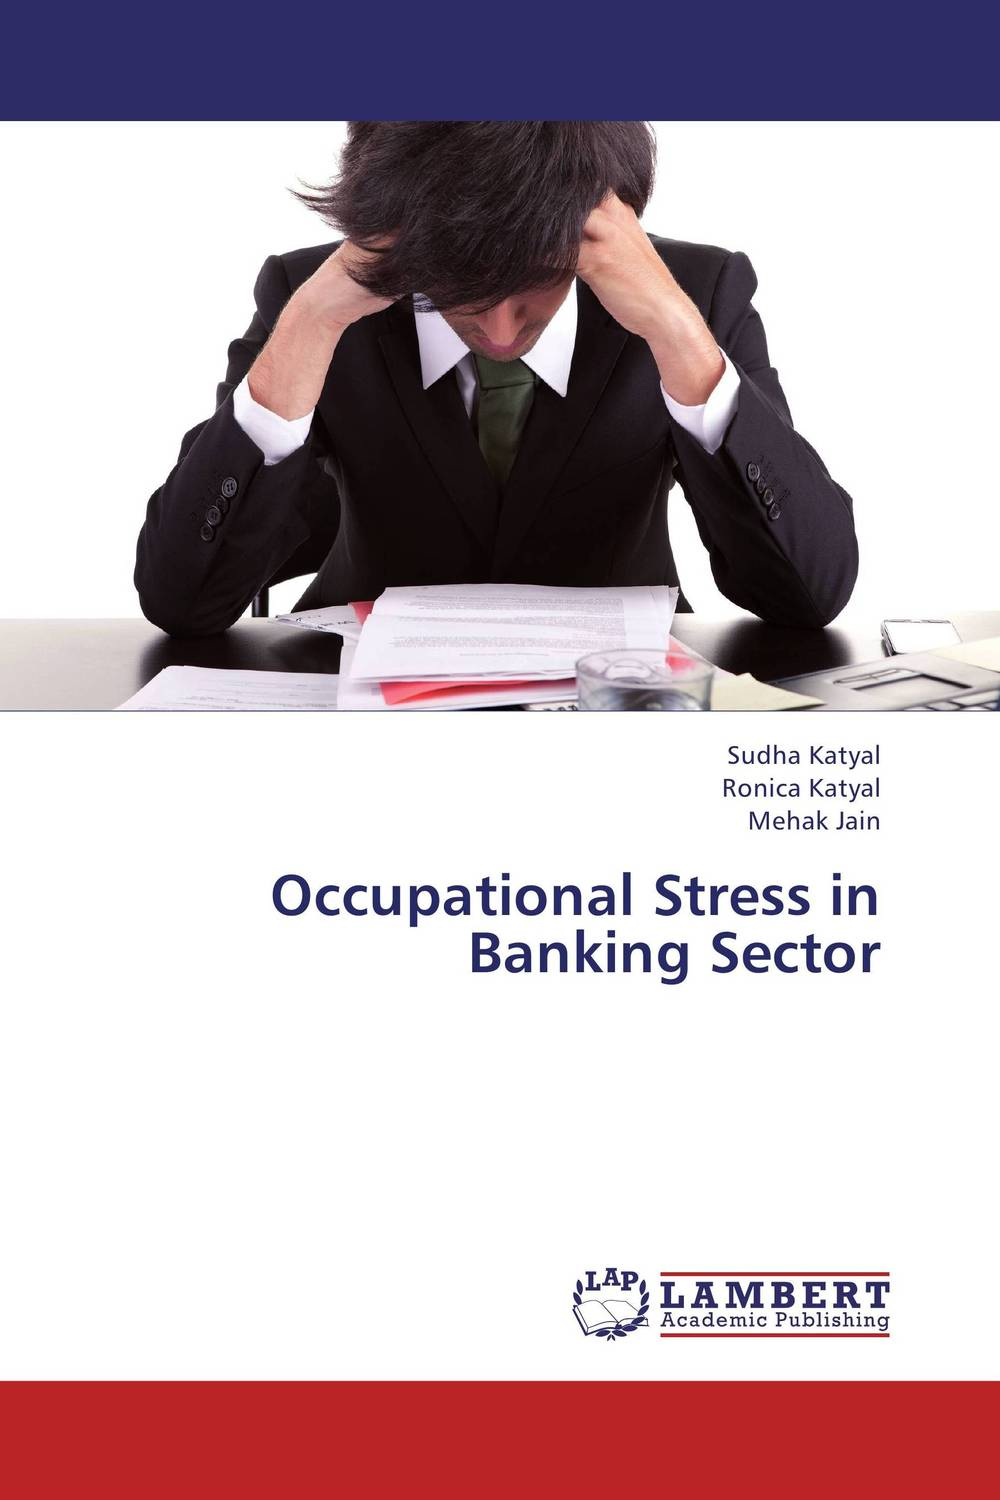 Occupational Stress in Banking Sector dr ripudaman singh mrs arihant kaur bhalla and er indpreet kaur stress among bank employees